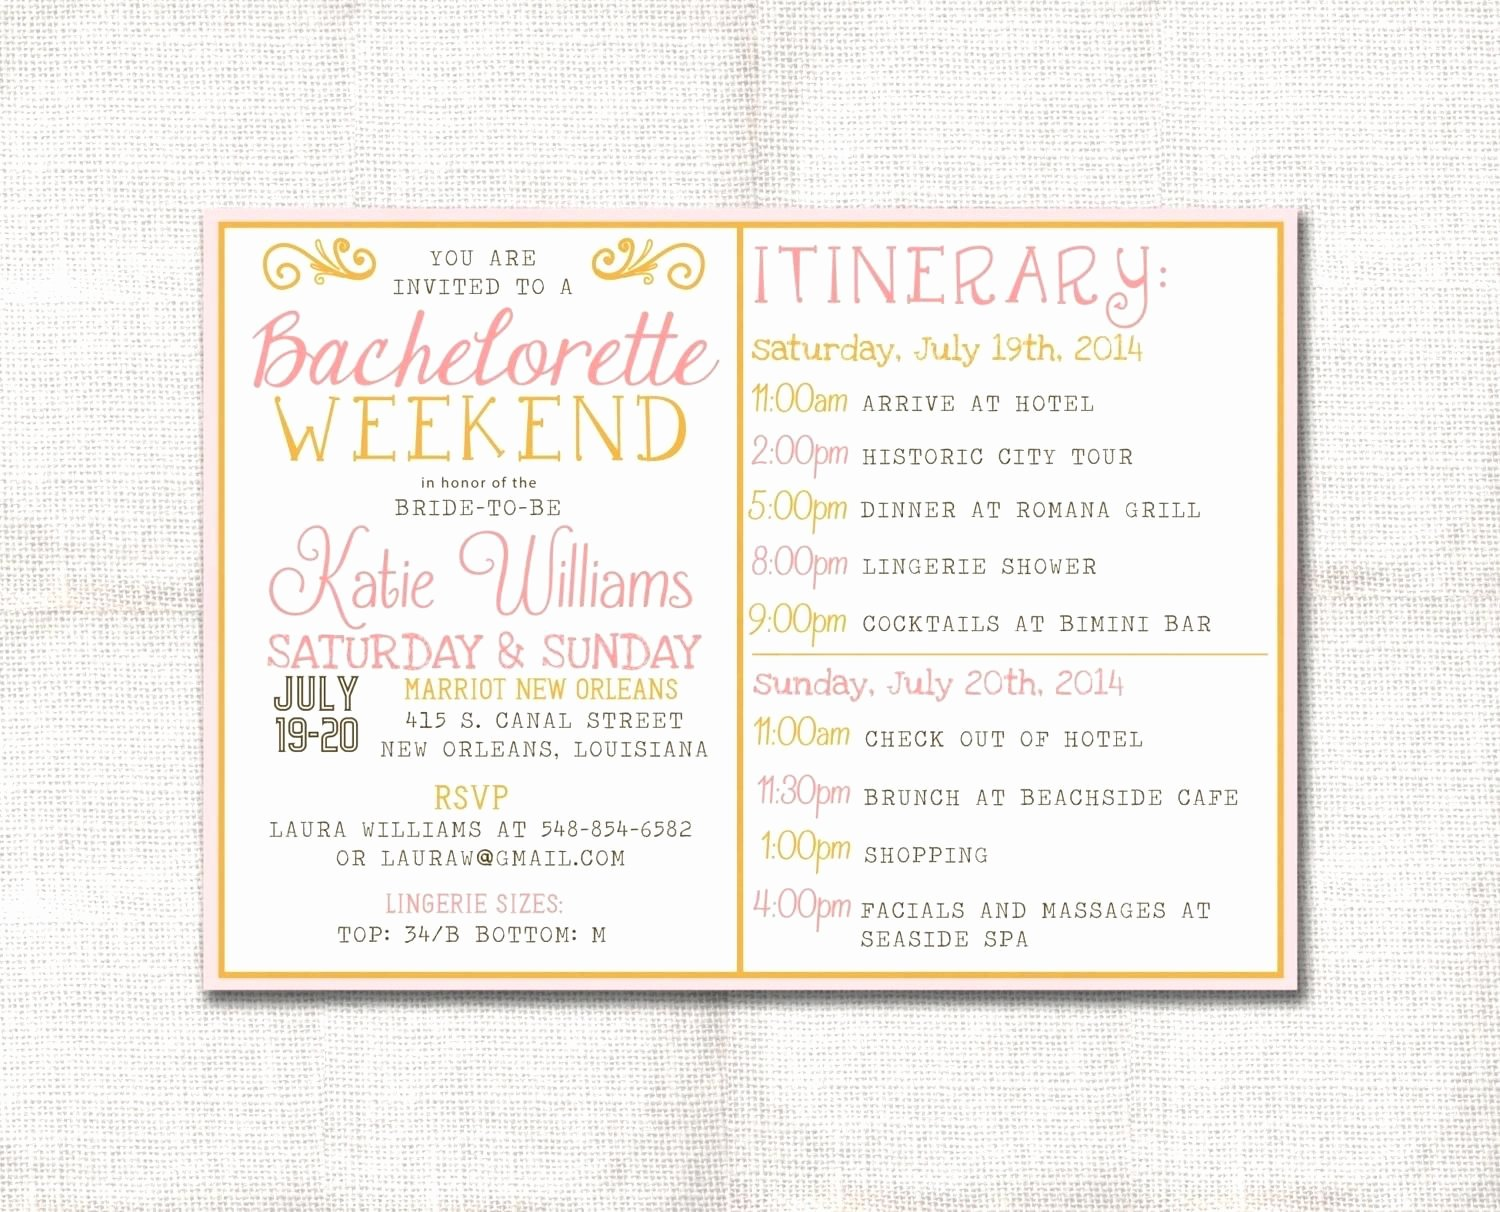 Bachelorette Weekend Itinerary Template Inspirational Template Bachelorette Party Agenda Template Zoom Free